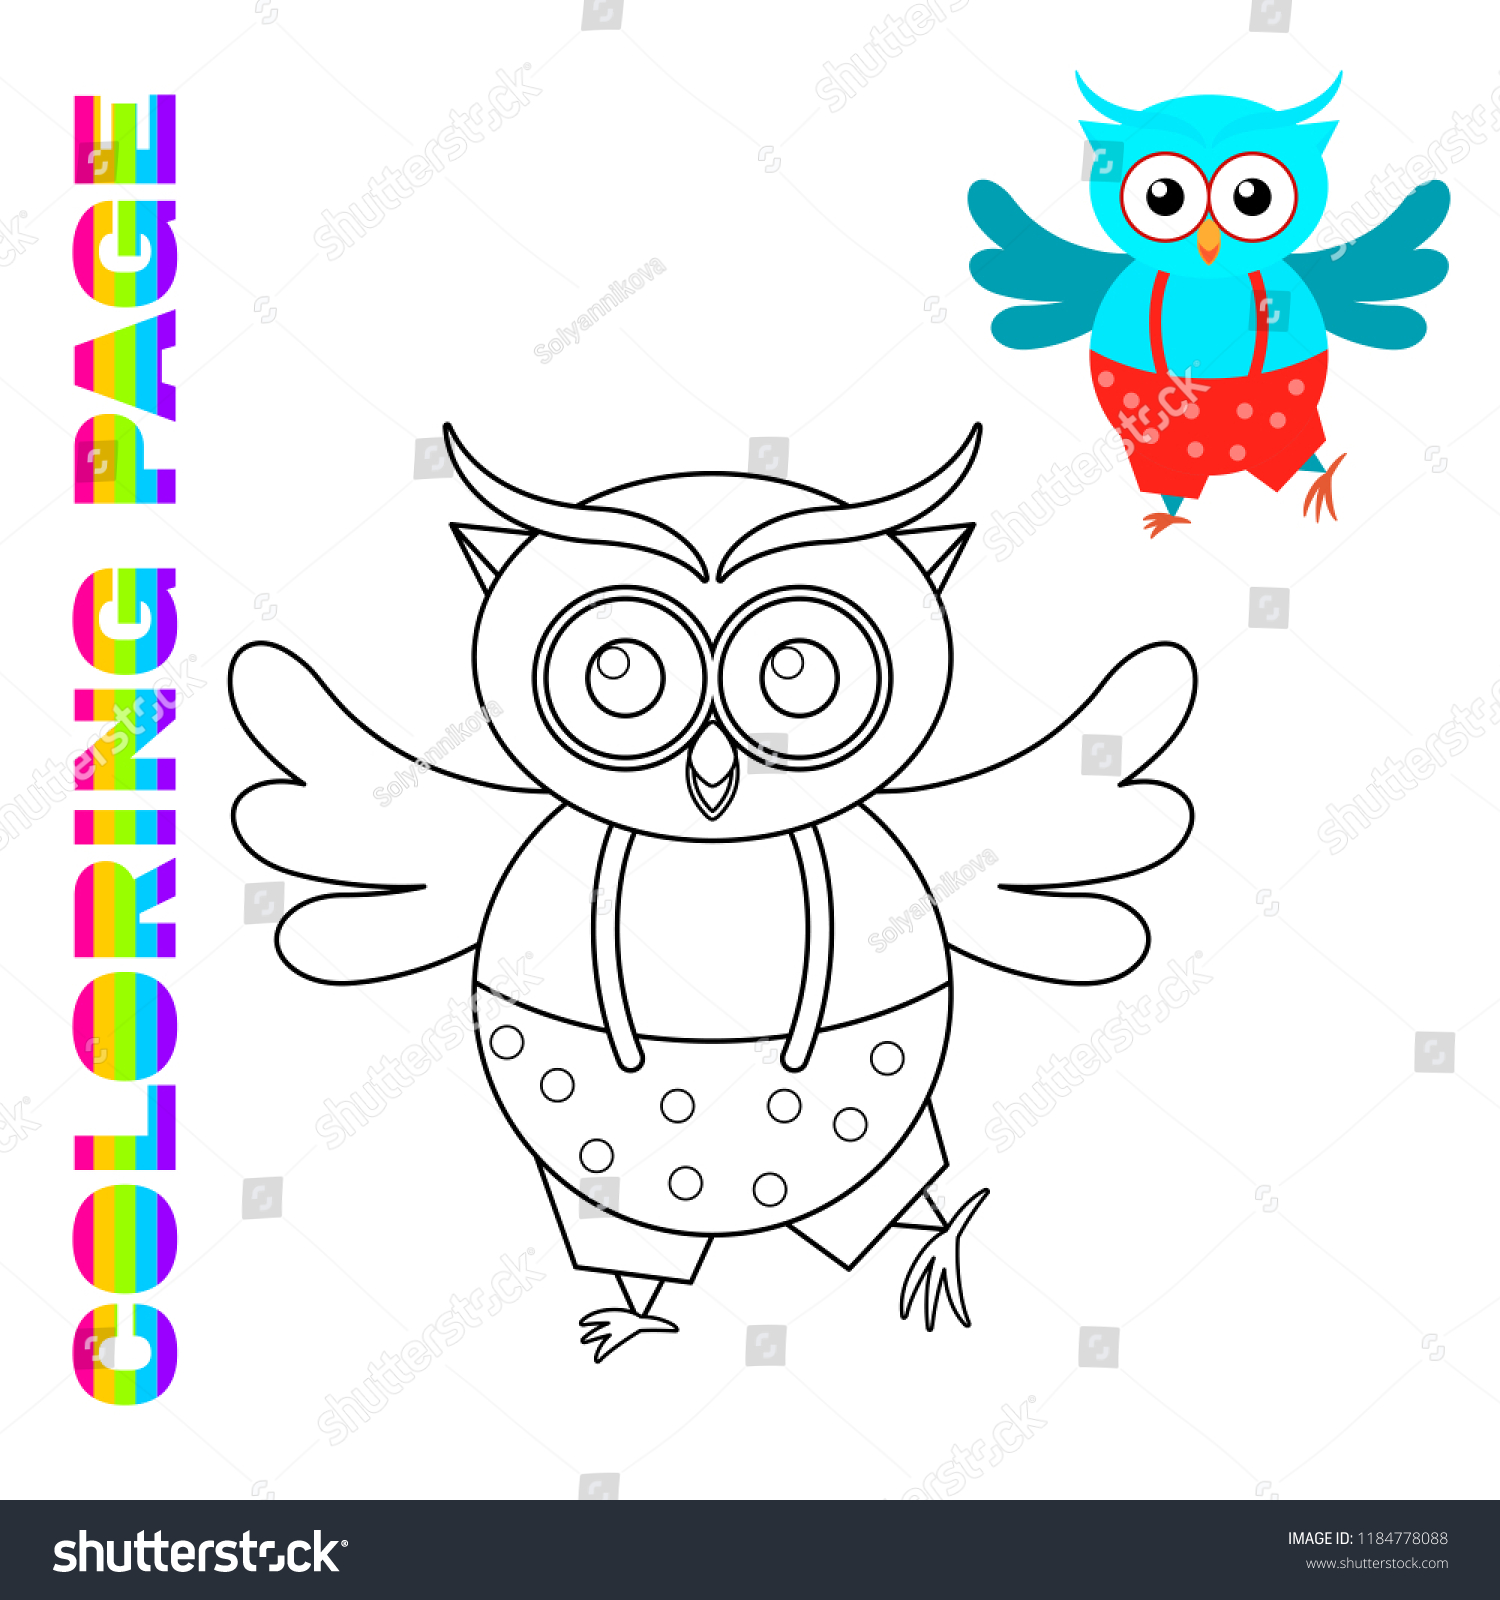 Cute Cartoon Owl Coloring Page Kids Stock Vector Royalty Free